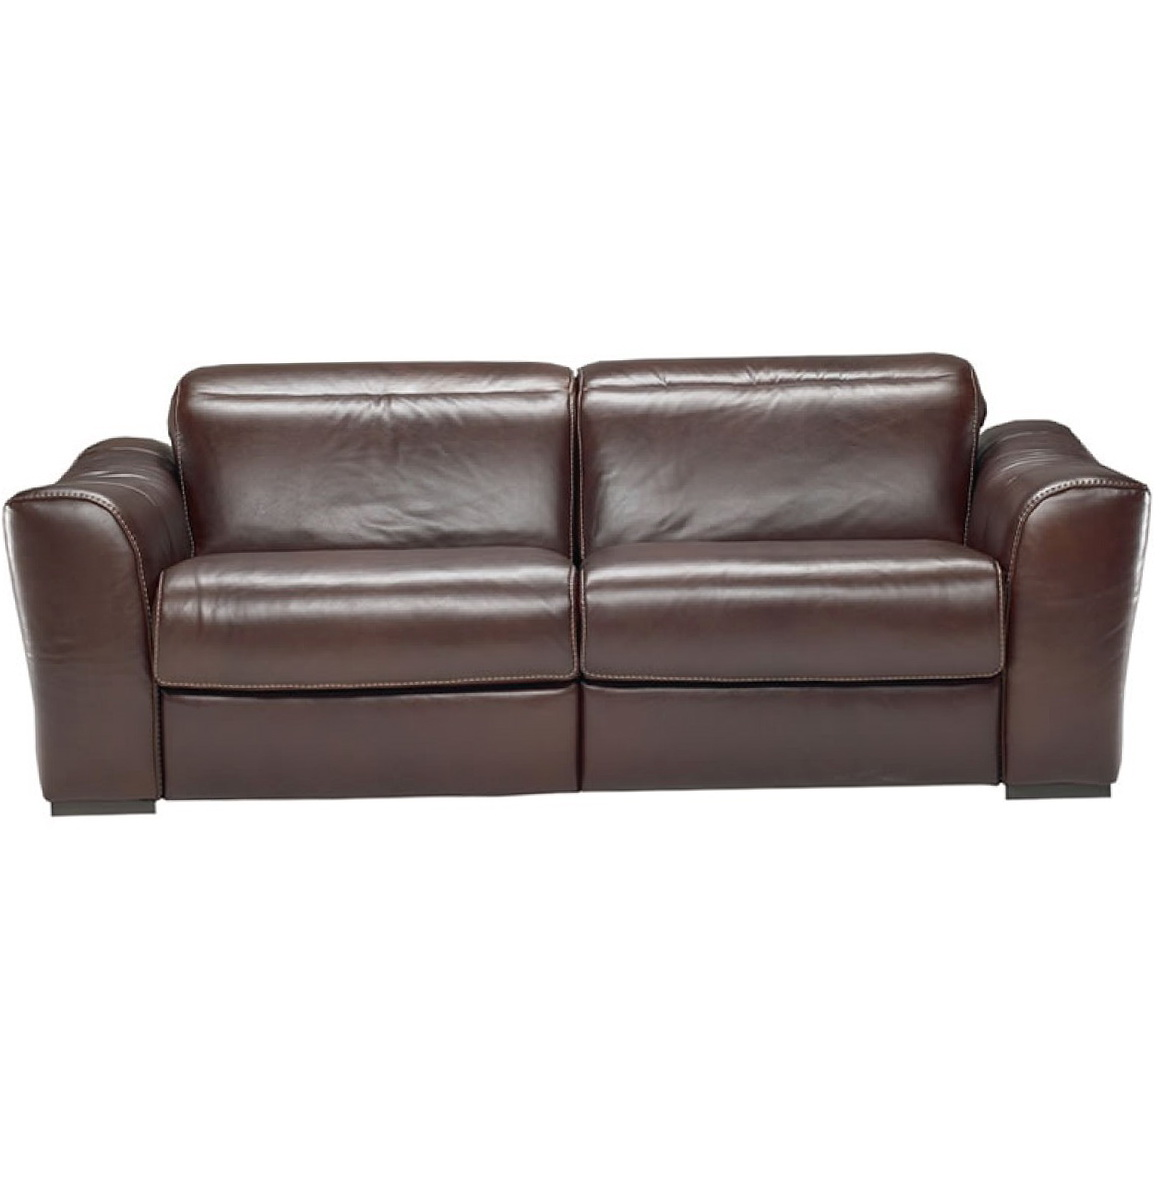 Natuzzi Leather Recliner Sofa